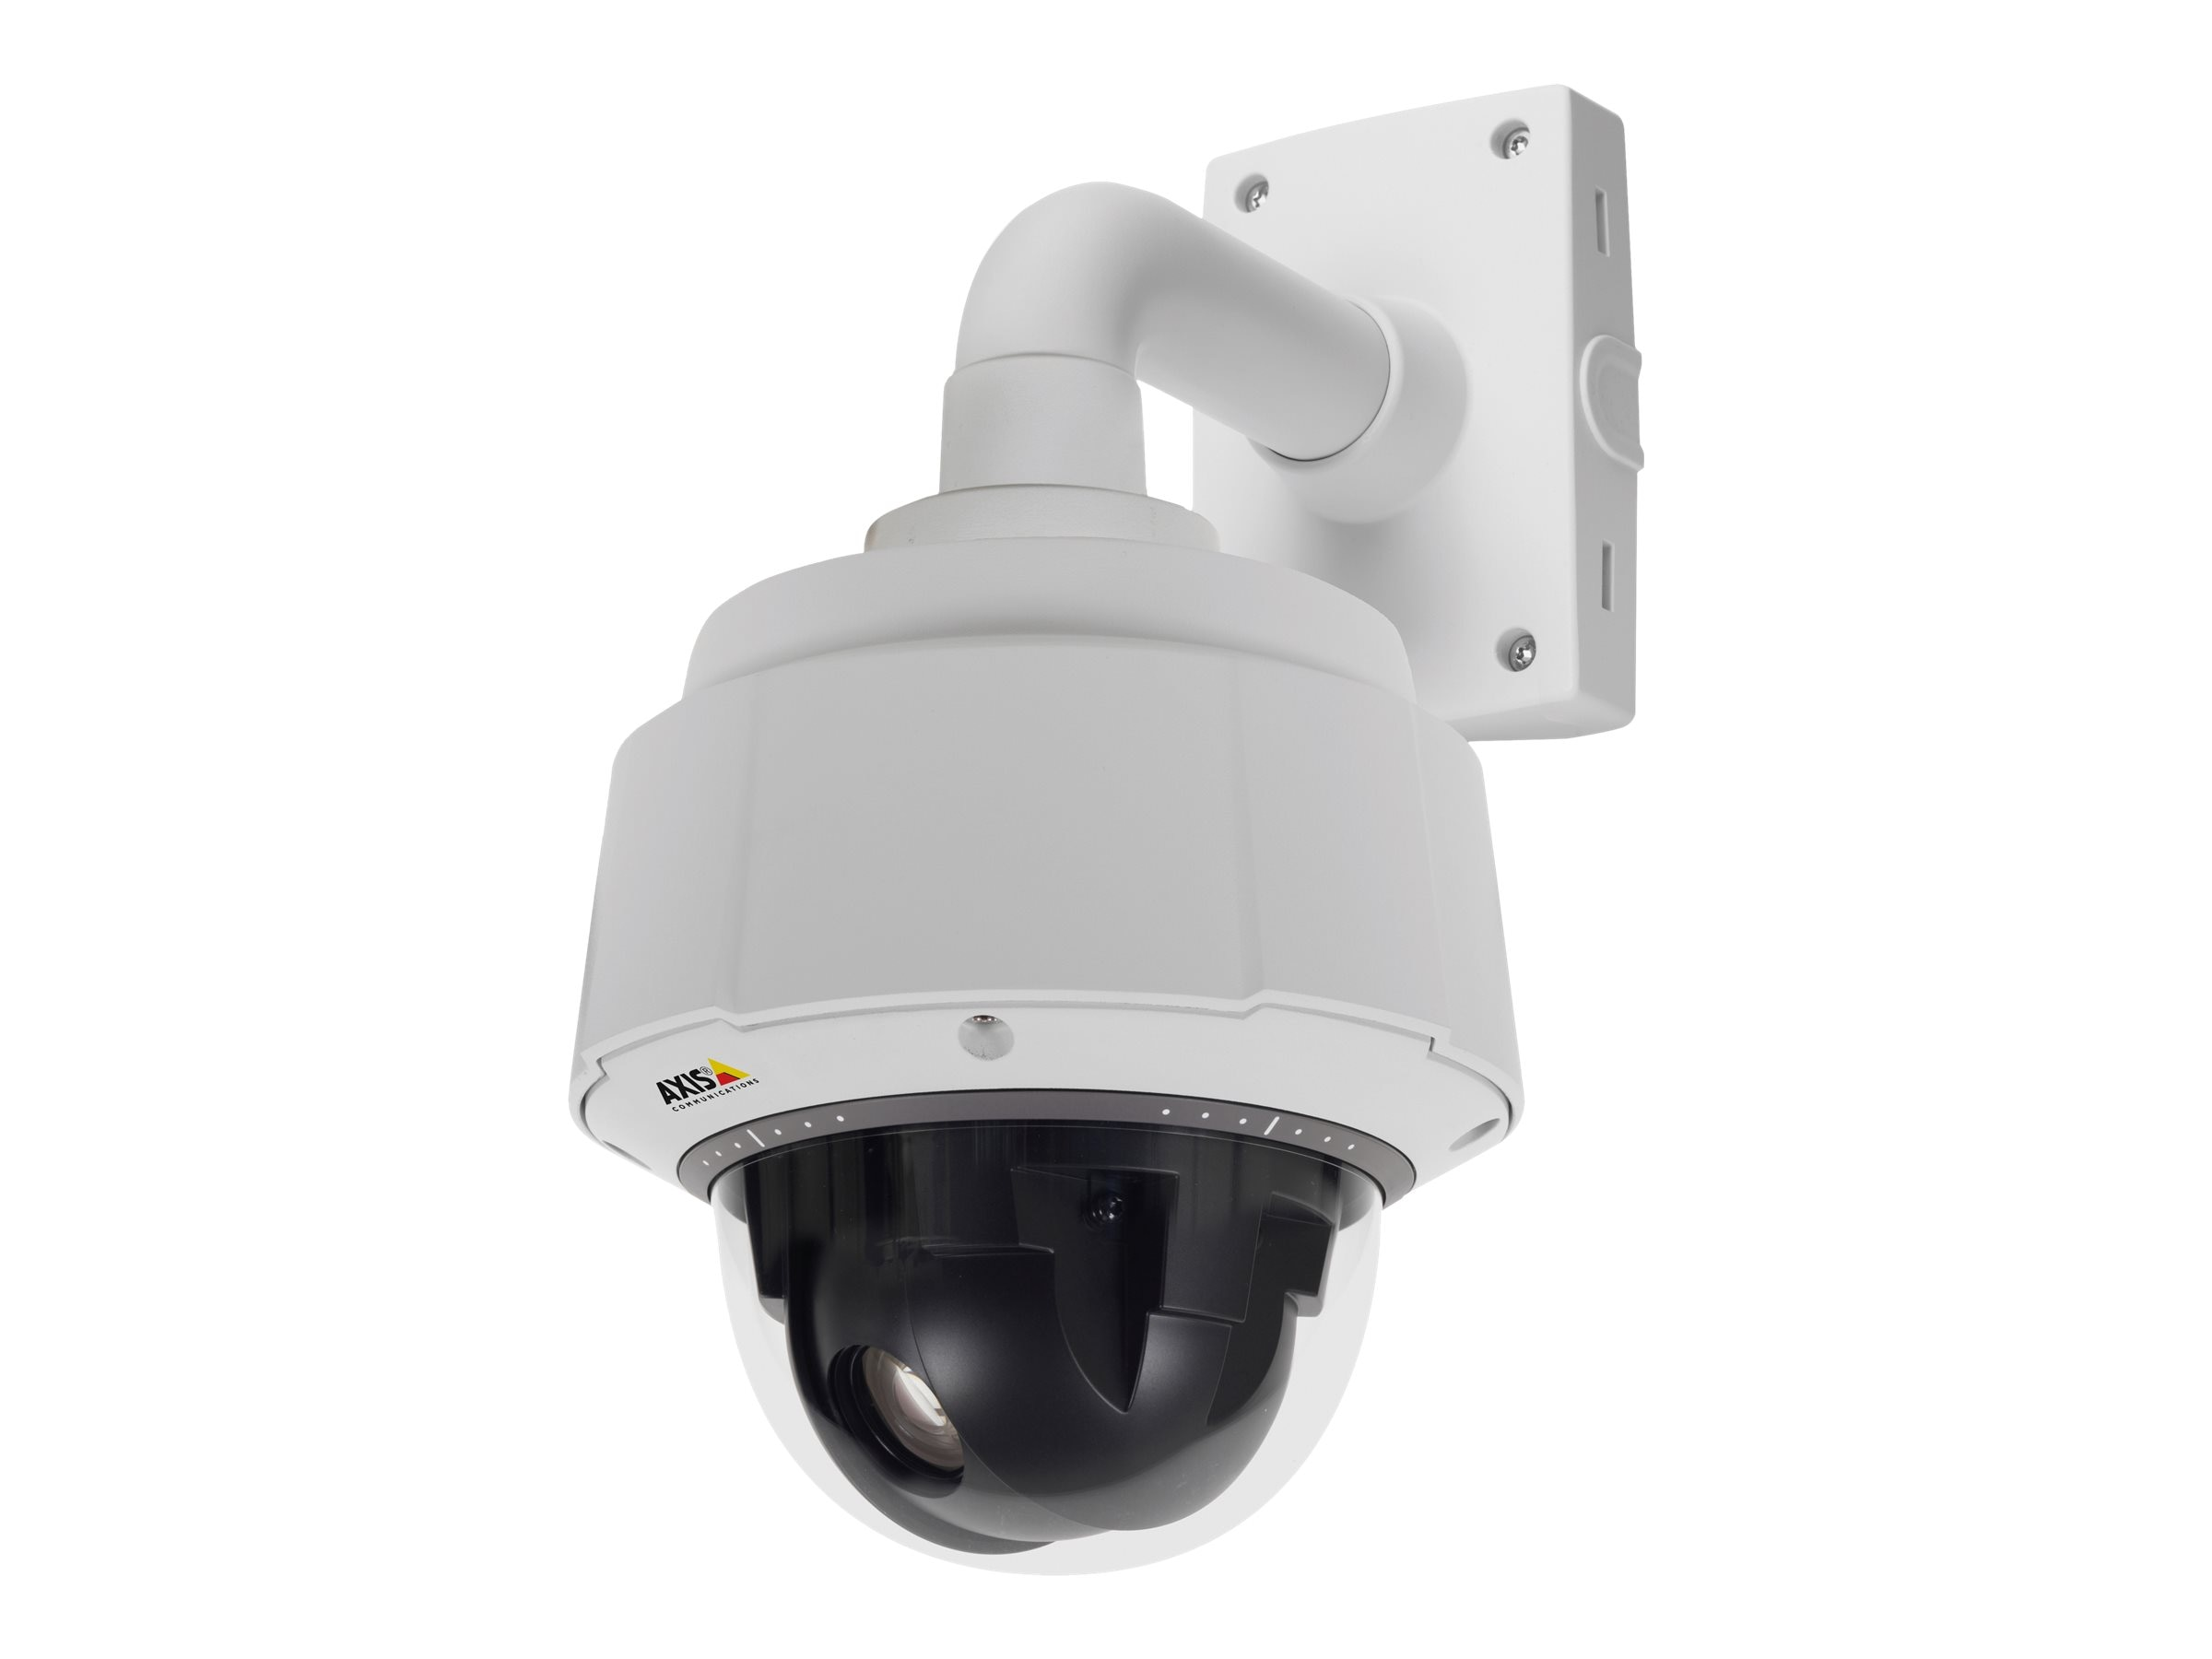 Axis Q6042-E PTZ Dome Network Camera